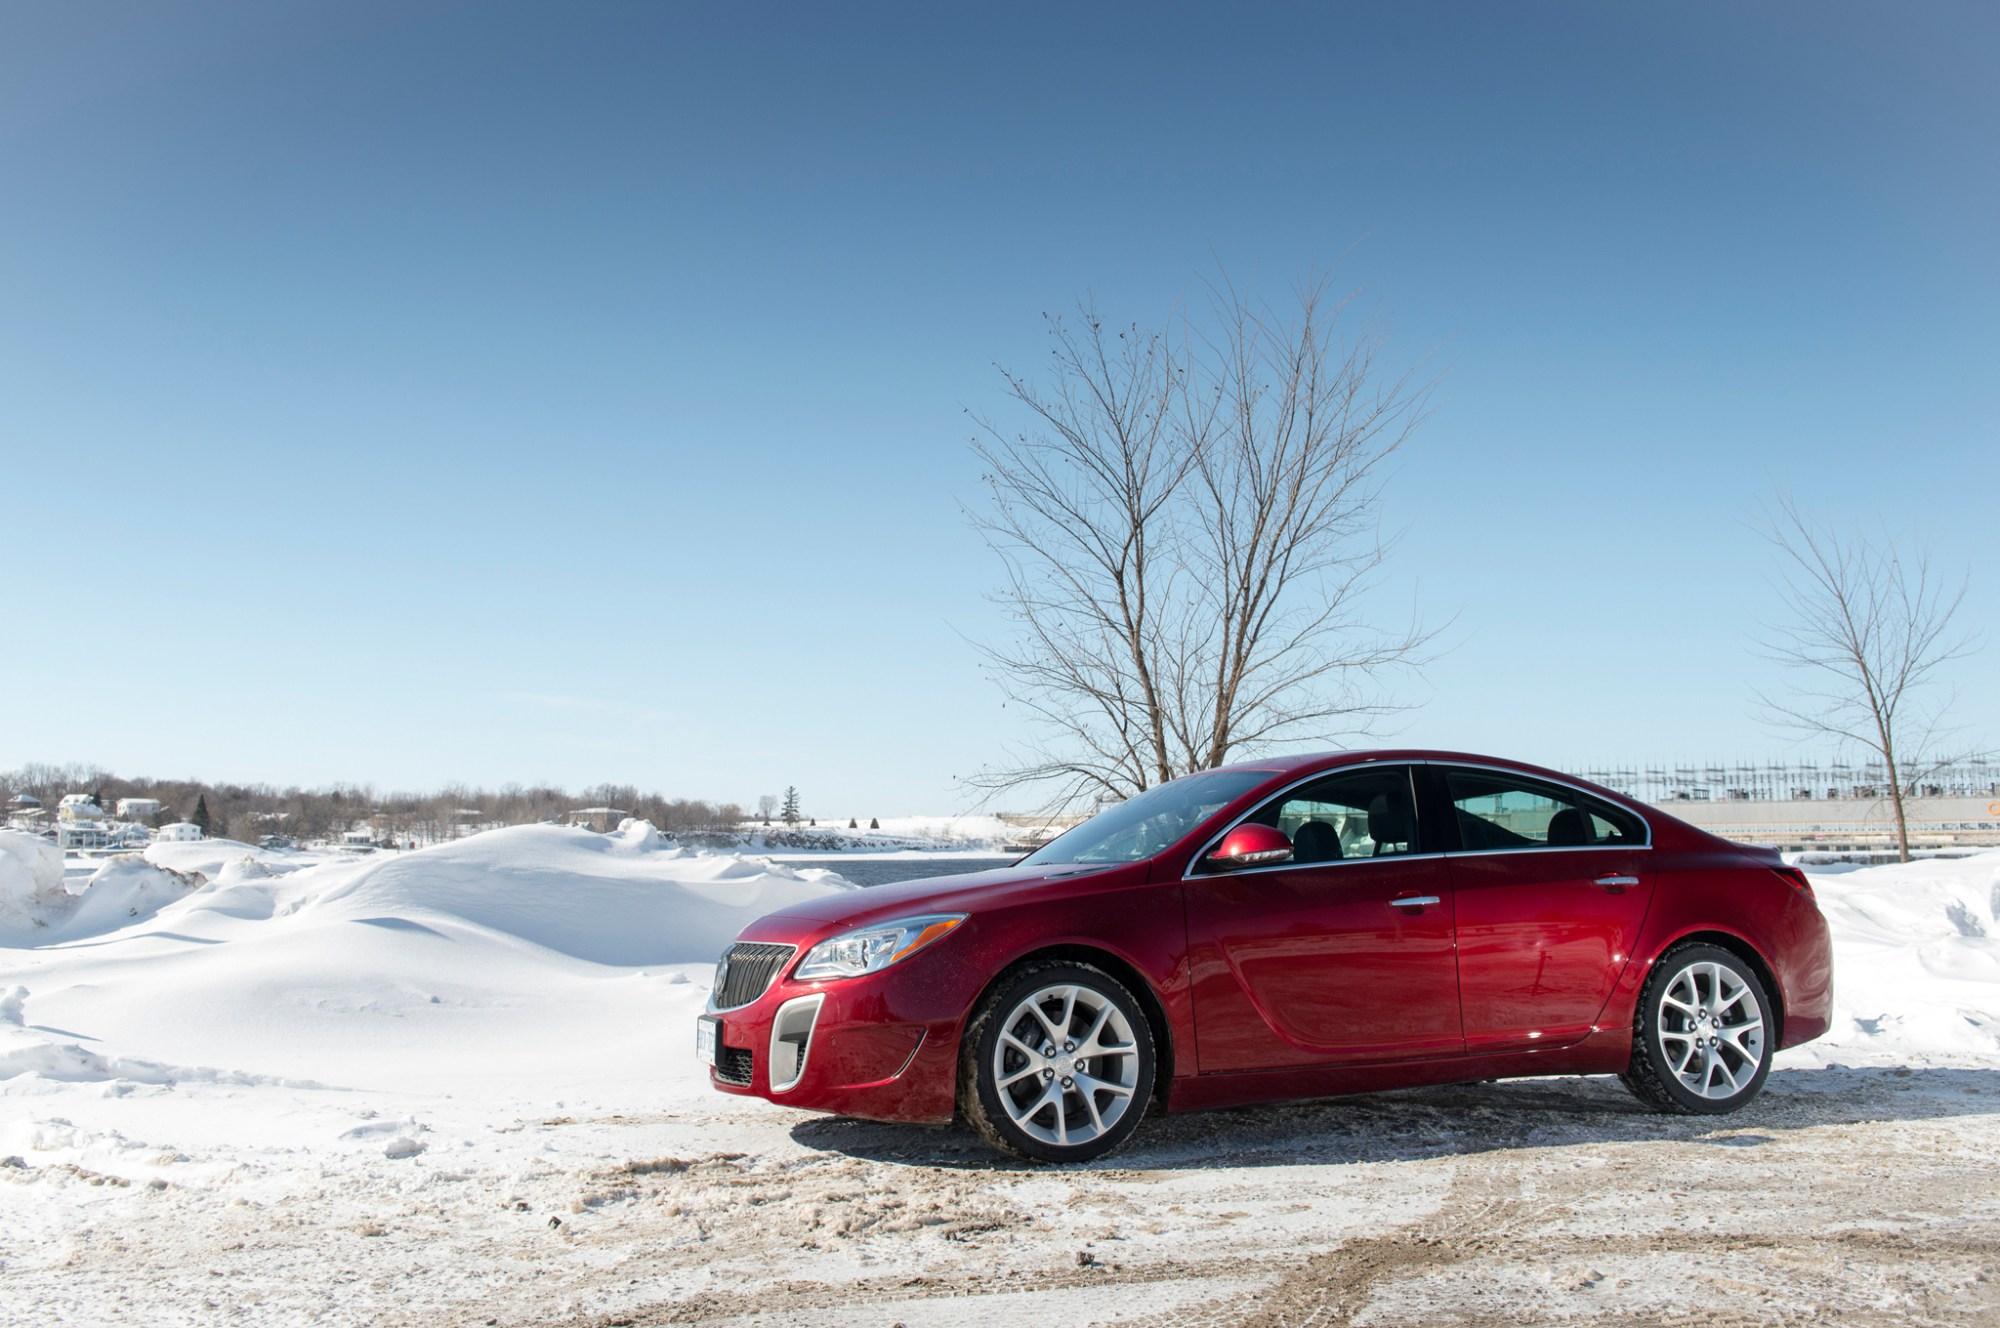 hight resolution of 2014 buick regal awd snow drive legit bmw competitor